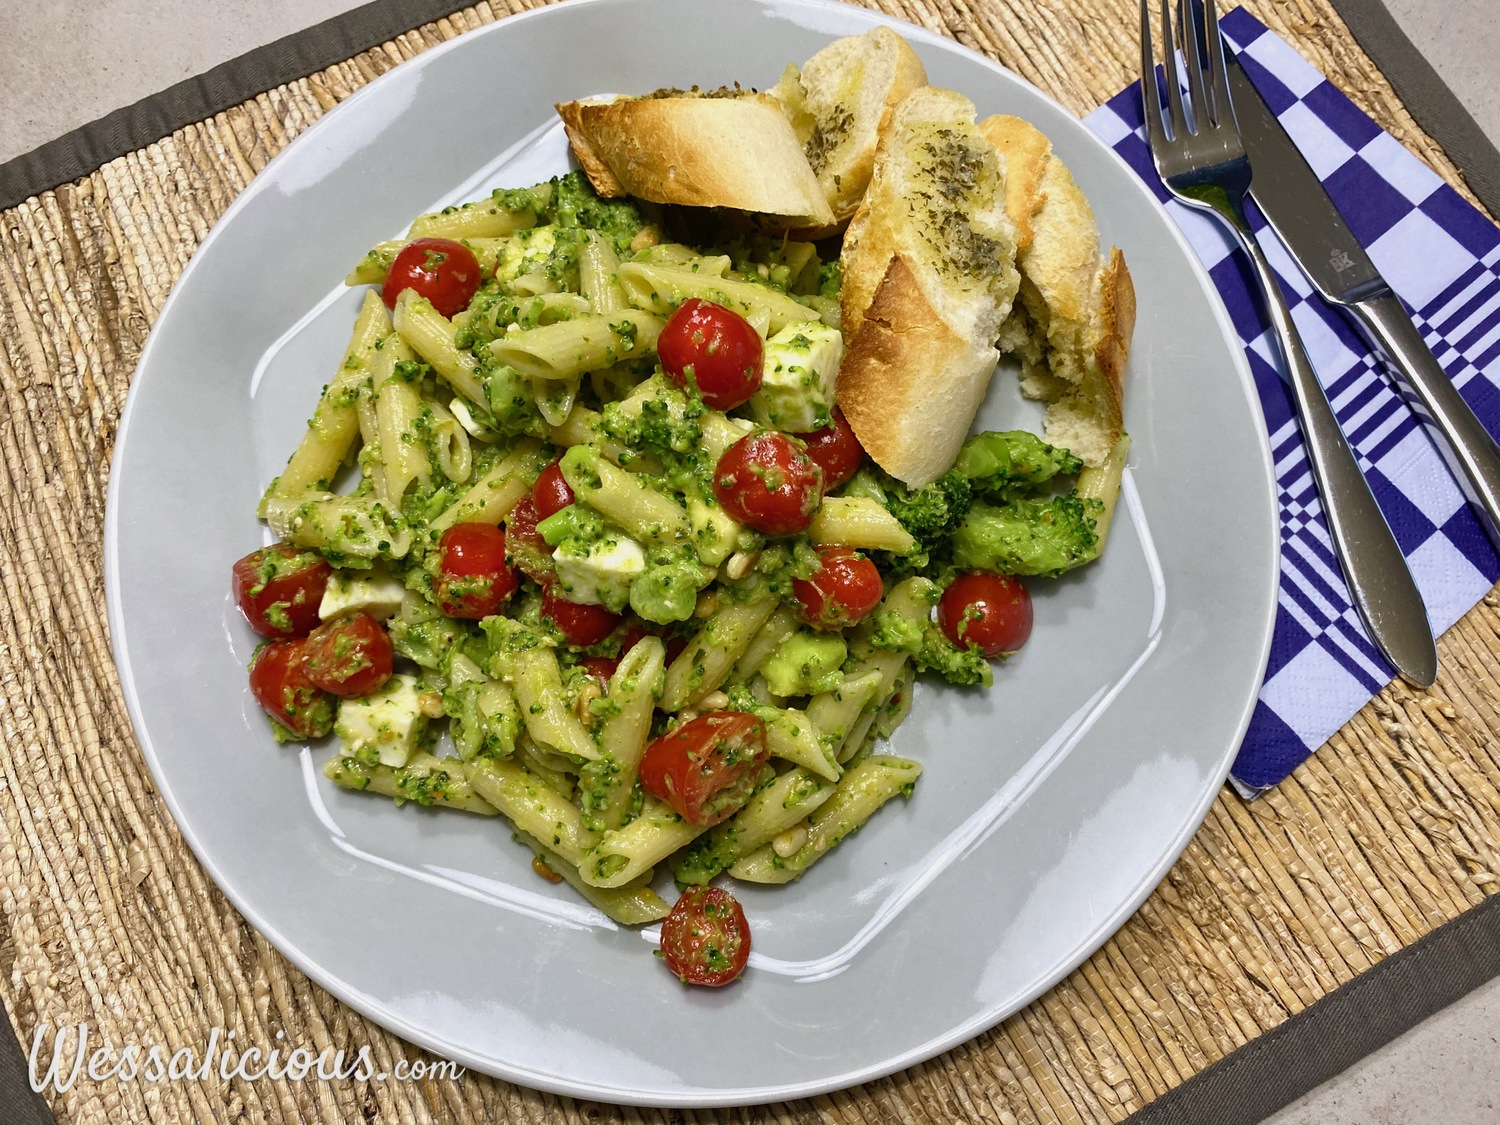 Pasta Pesto met mozzarella en broccoli